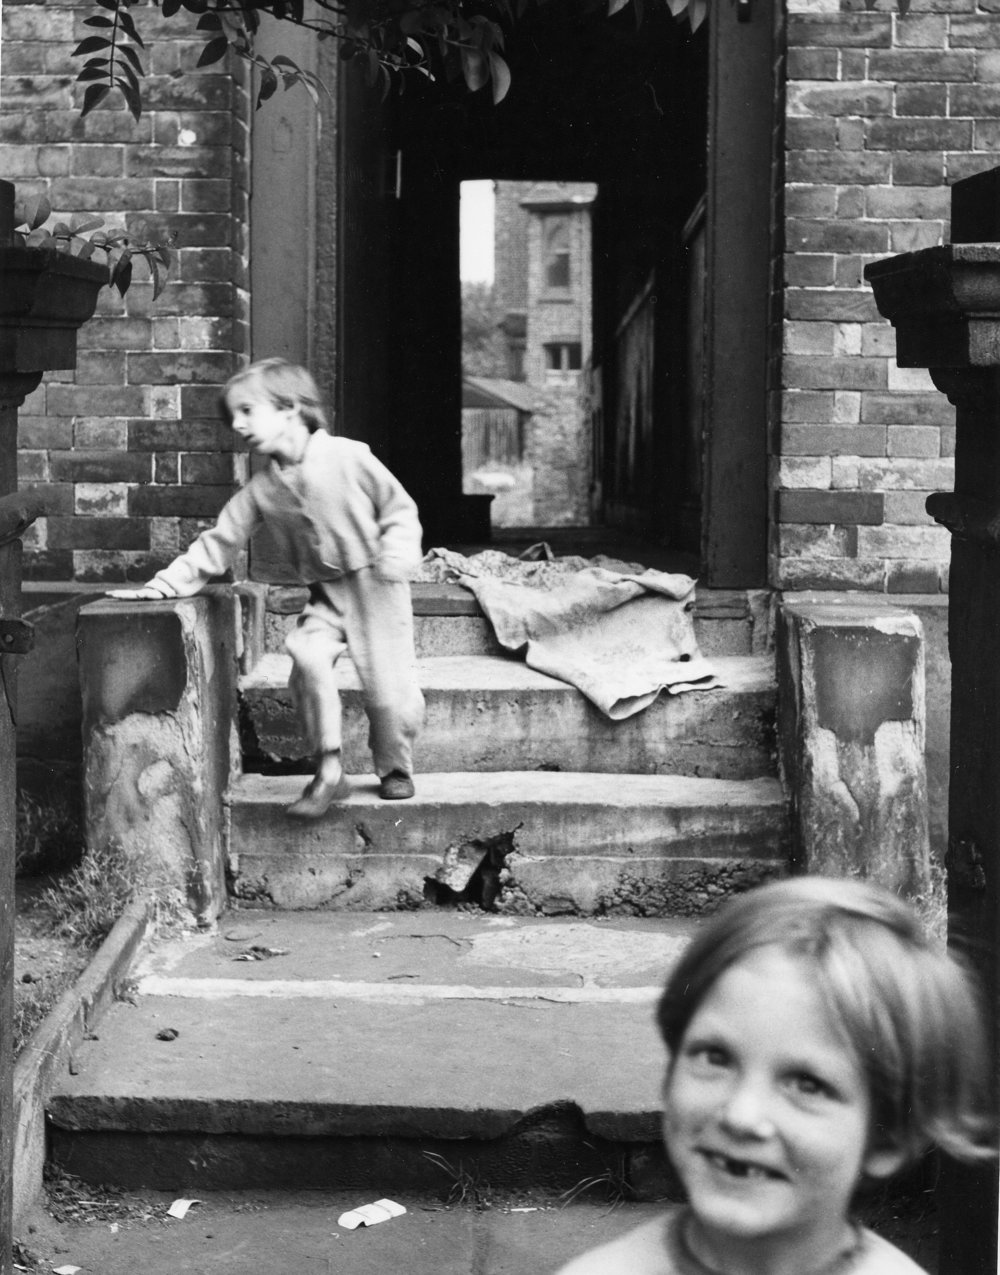 Cheetham, mcr., 2 kids & house, 18-68-5 (1966).jpg